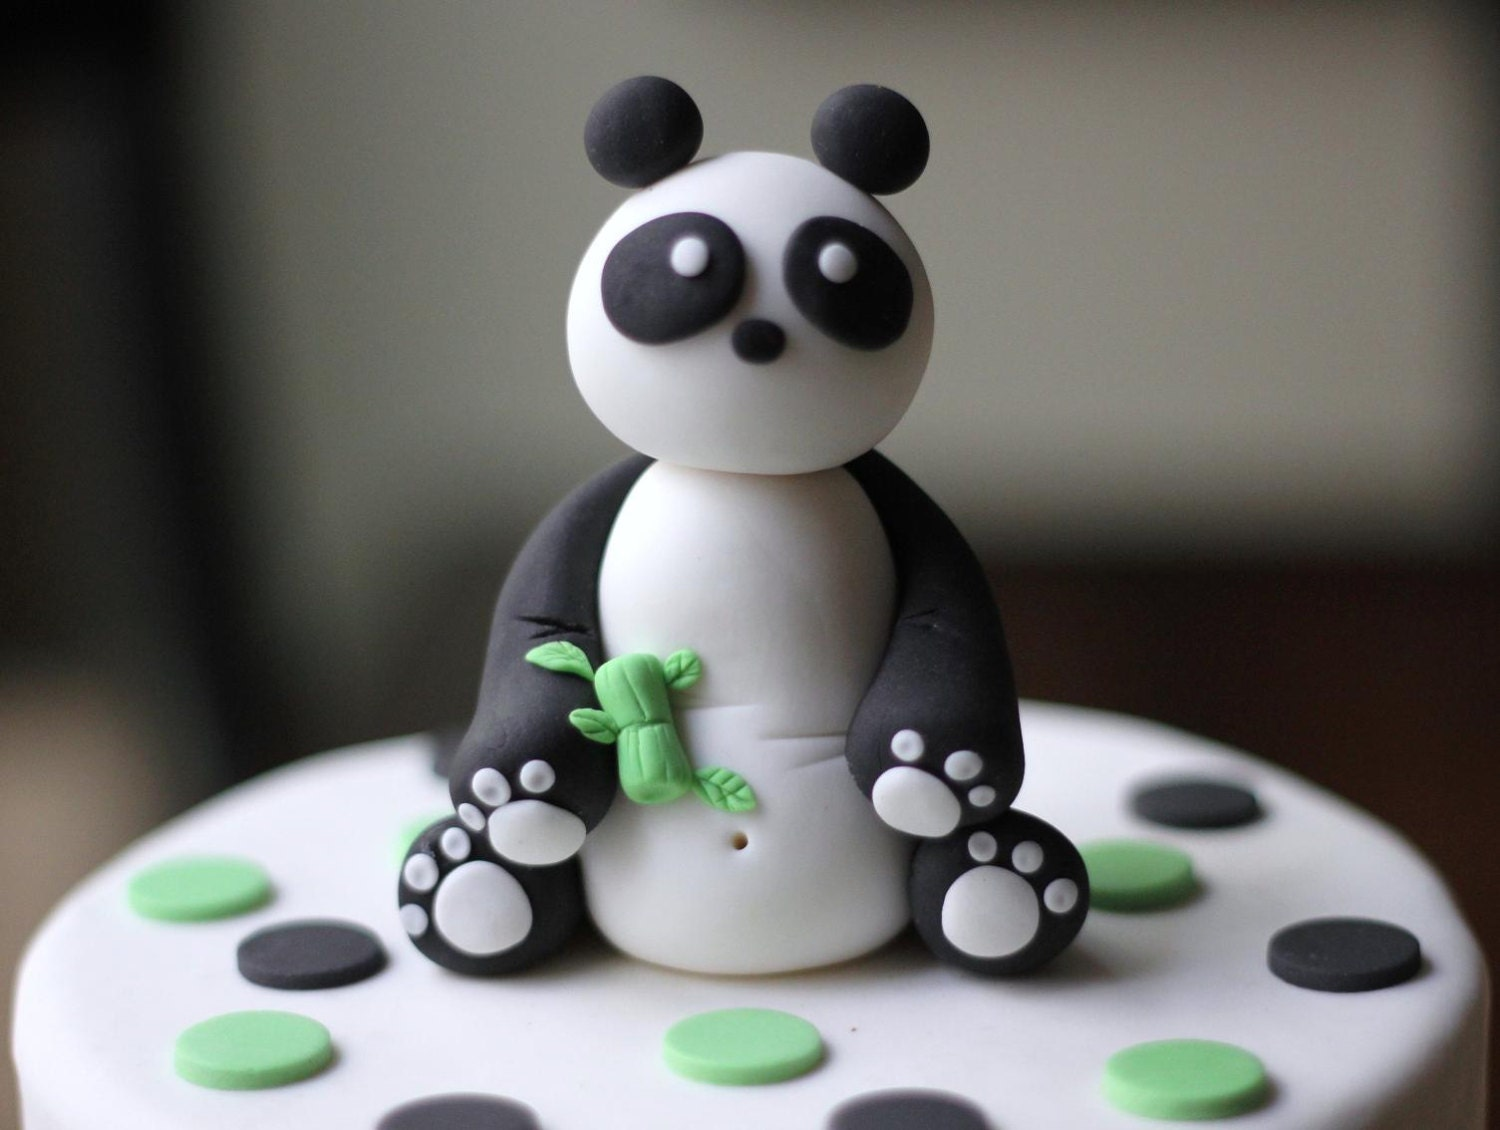 Fondant panda cake topper. This set comes in over 25 pieces